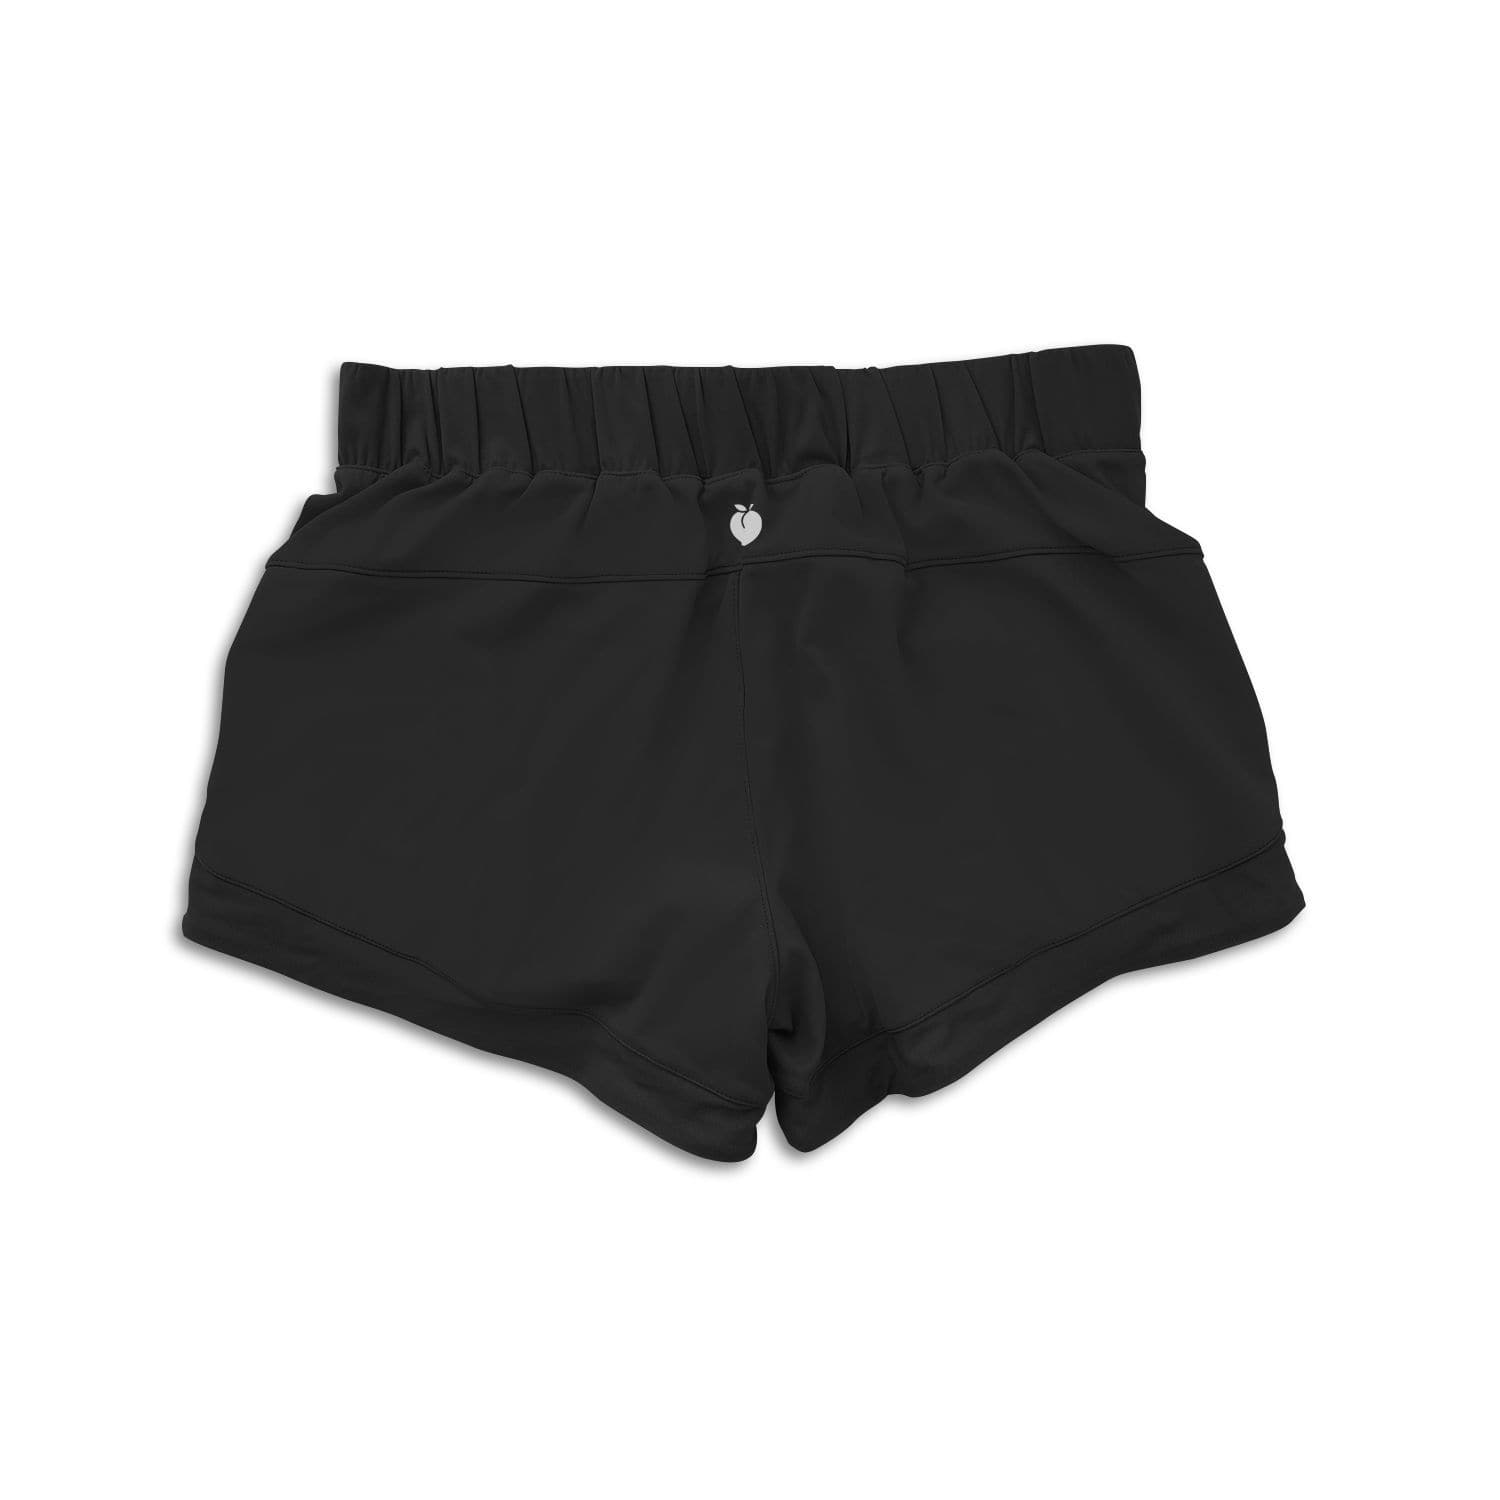 Breathe Easy Short - Black